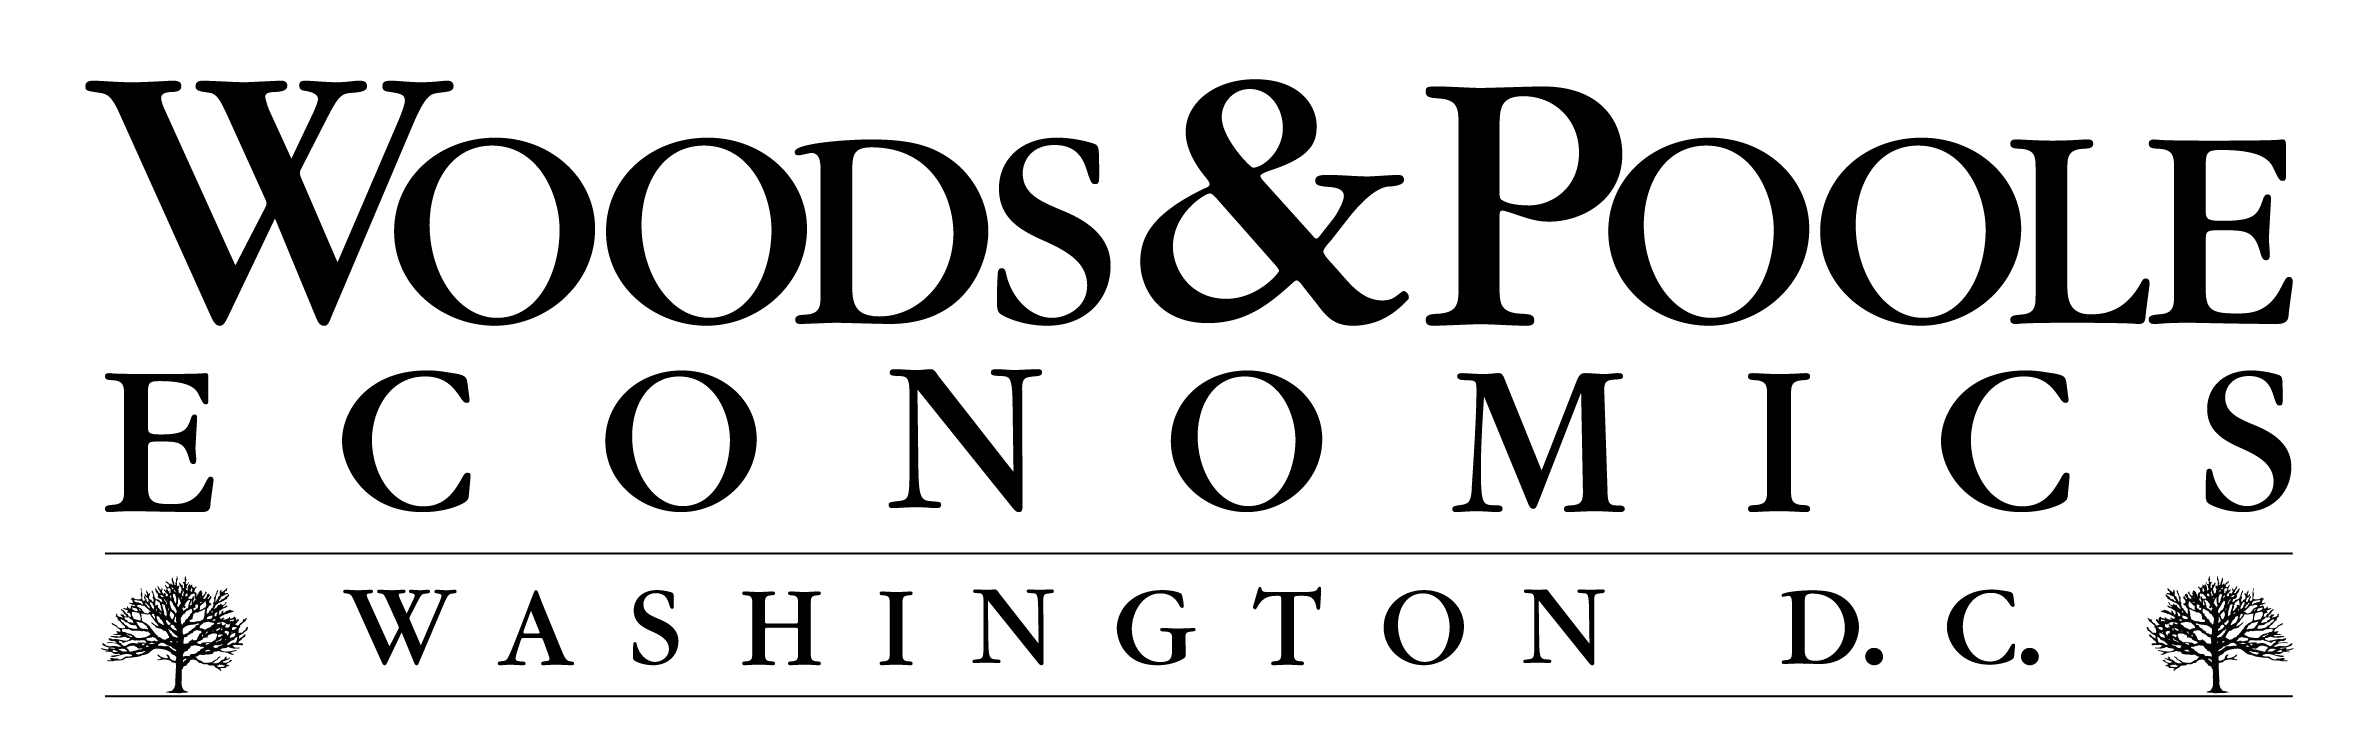 CALIFORNIA-LEXINGTON PARK MD (FIPS 15680) | Woods & Poole Economics, Inc